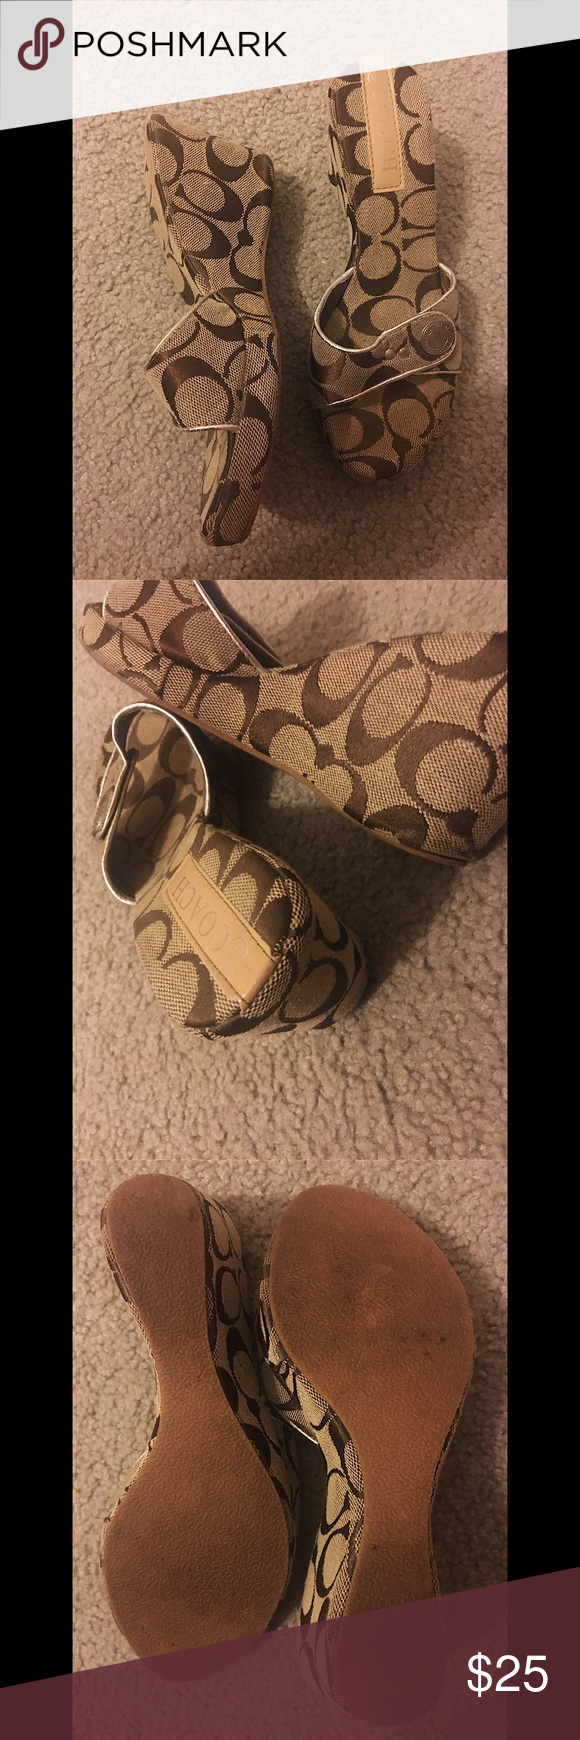 ‼️ Coach classic wedge Roughly 3 inches tall. No box. No major defect. NO TRADES 🙅🏻 ALL REASONABLE OFFERS ARE ACCEPTED 😊👍🏽 NO LOWBALLERS!!! 😒✌🏽️✌🏽 LET'S BUNDLE!!!! 🎋🎉🎁🎊🎈 Coach Shoes Wedges